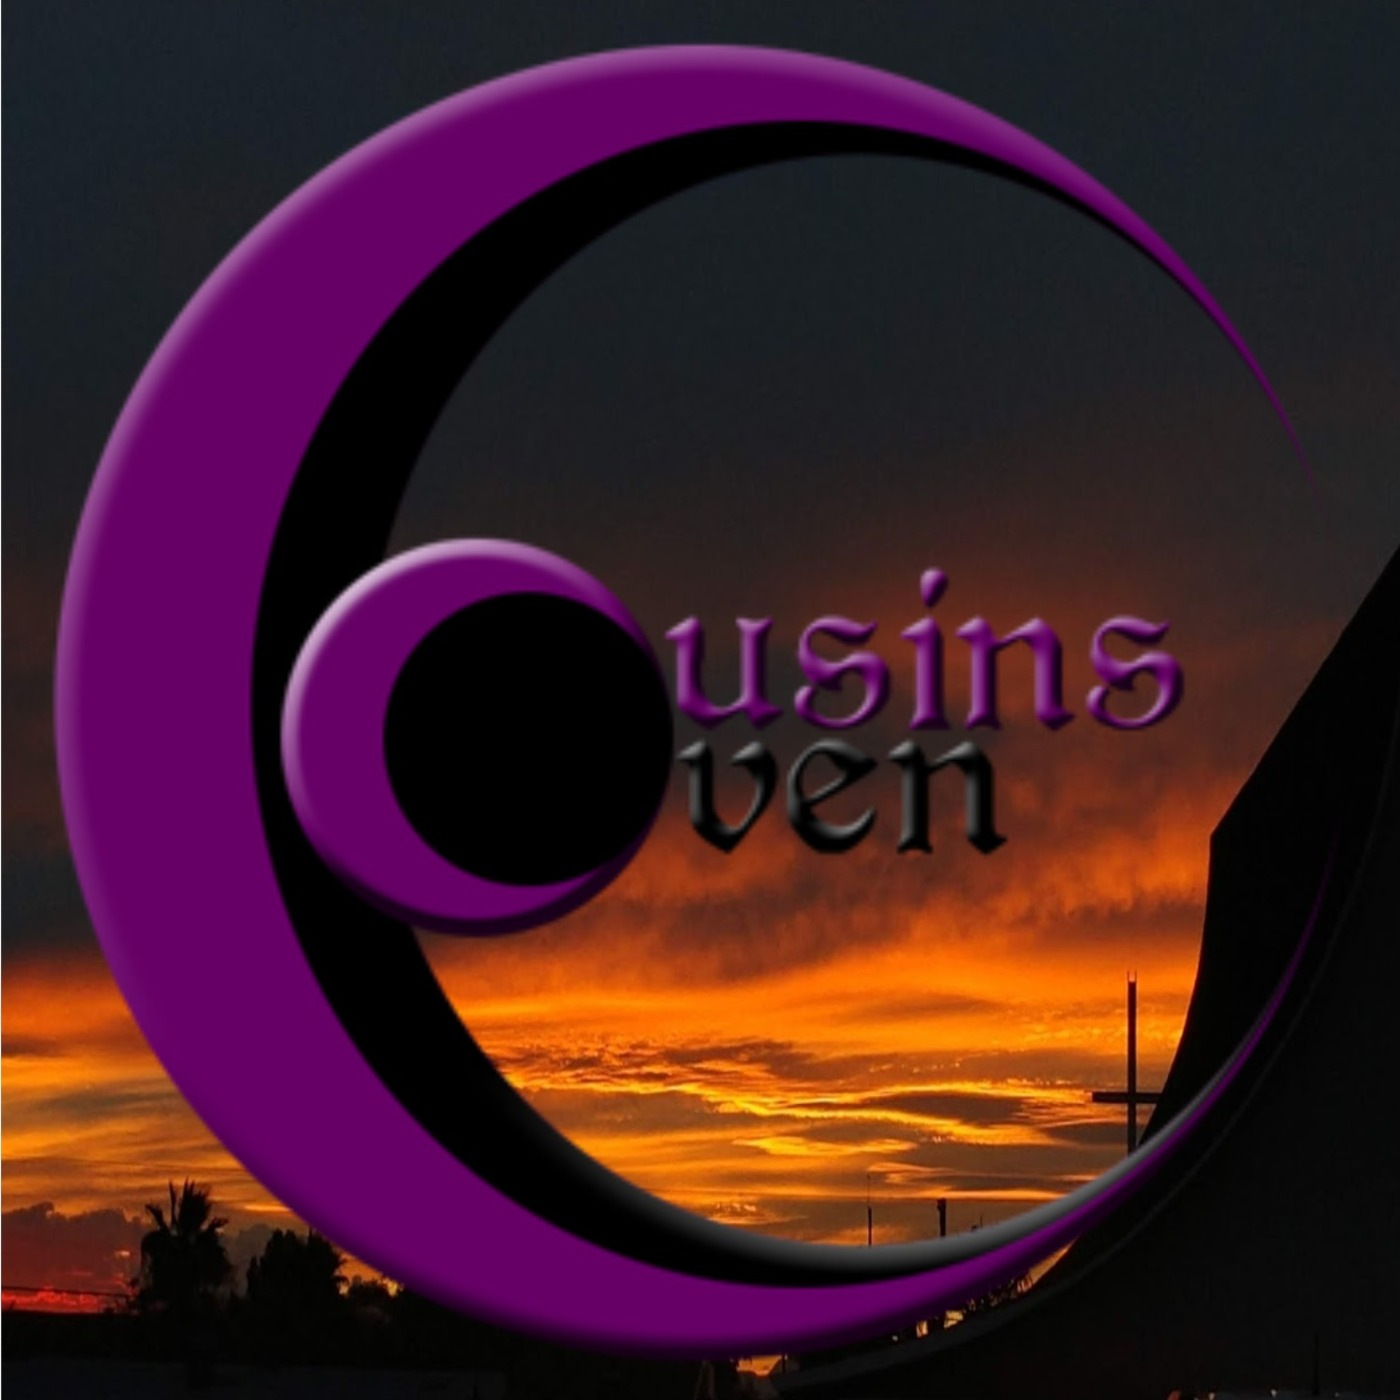 Cousins Coven Podcast - Podcast – Podtail